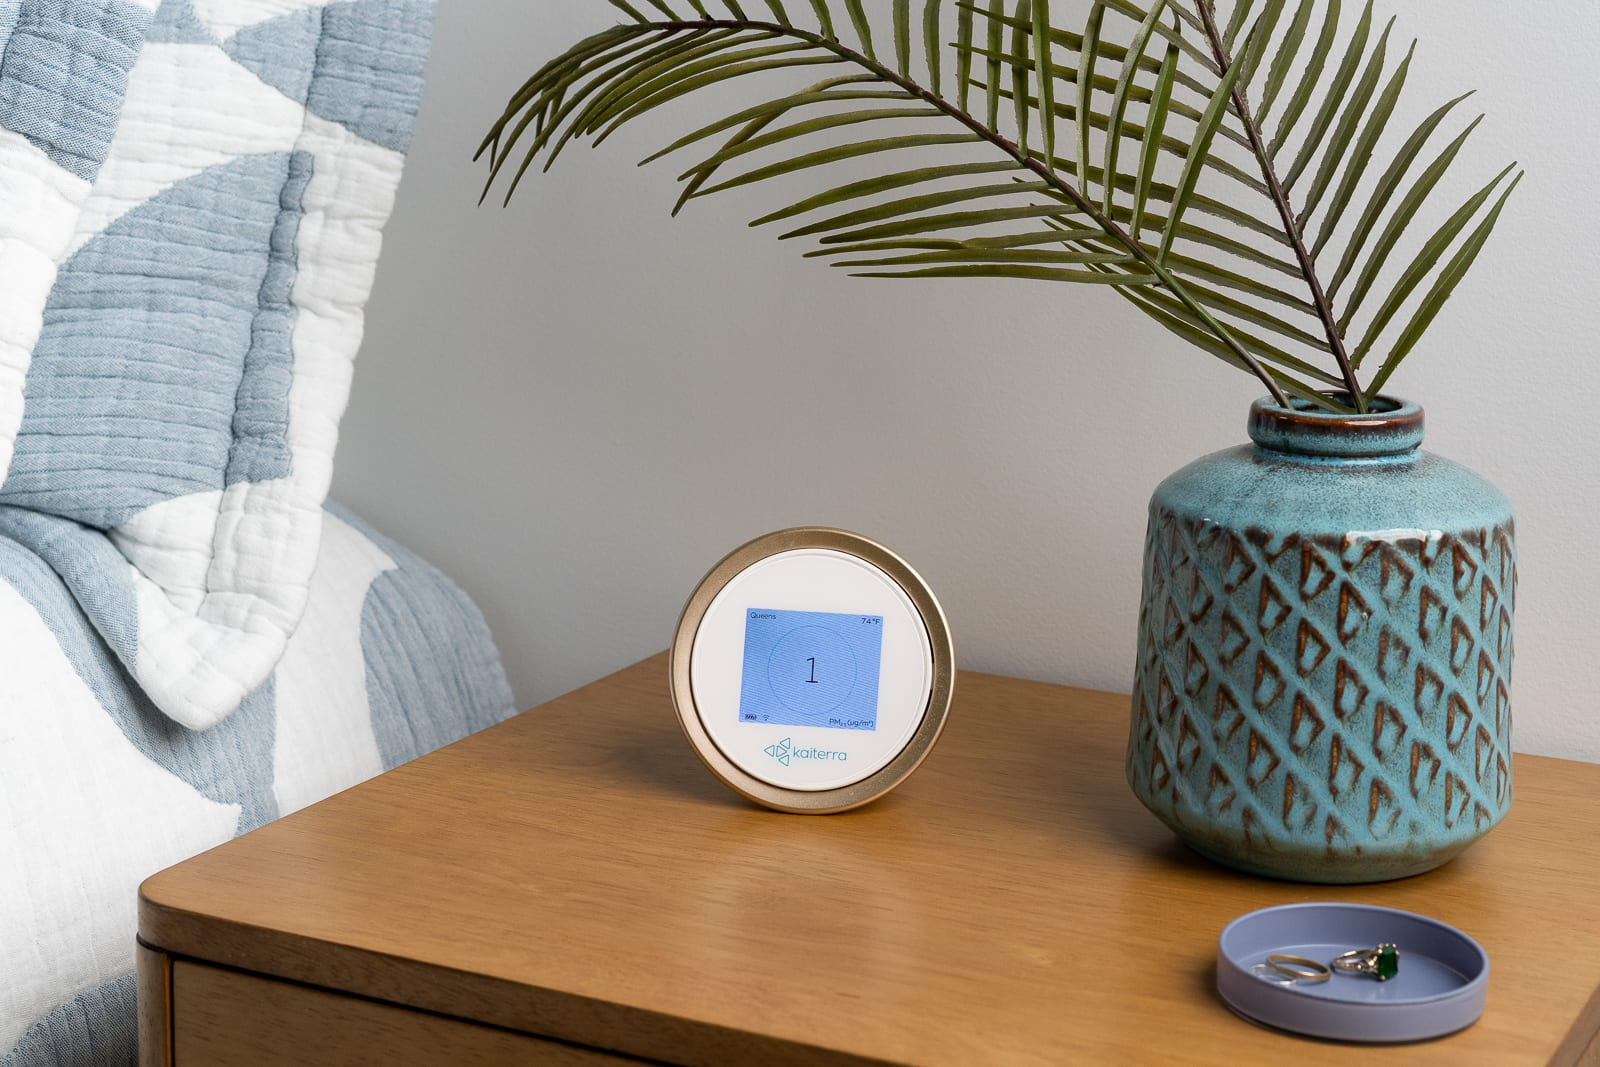 Home air quality monitor